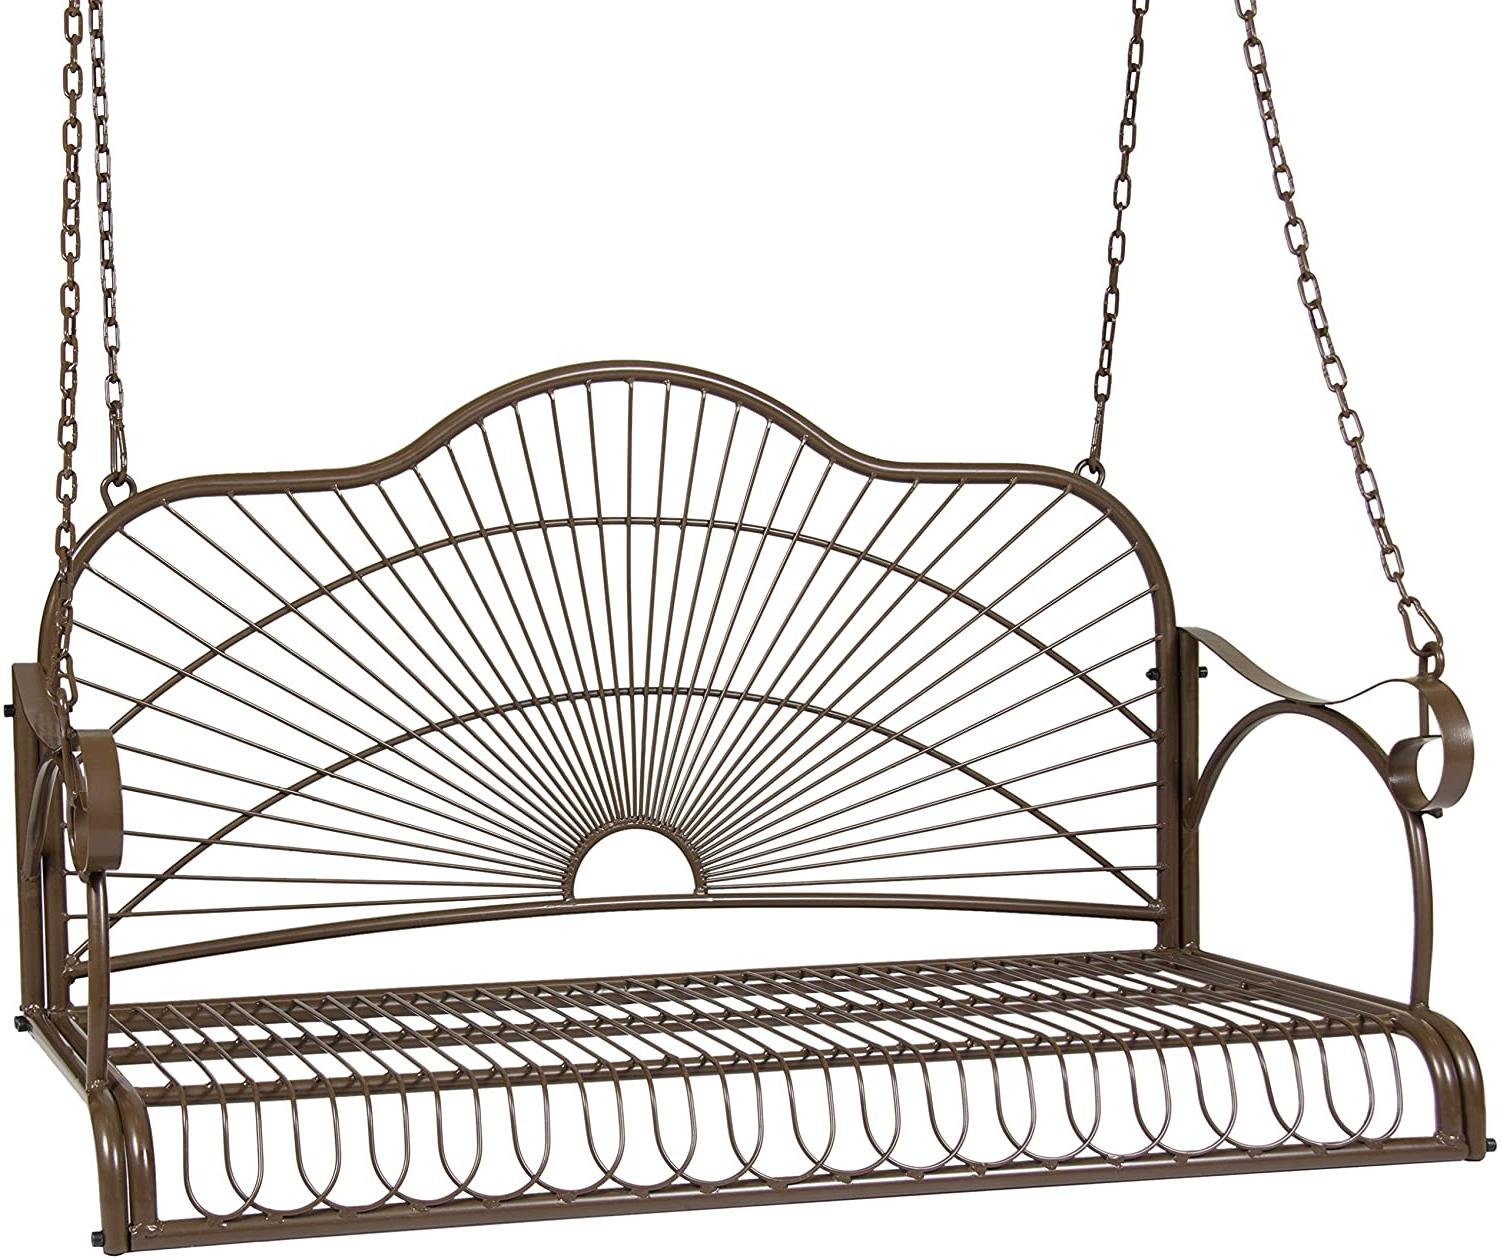 Hanging Iron Set-Outdoor Double